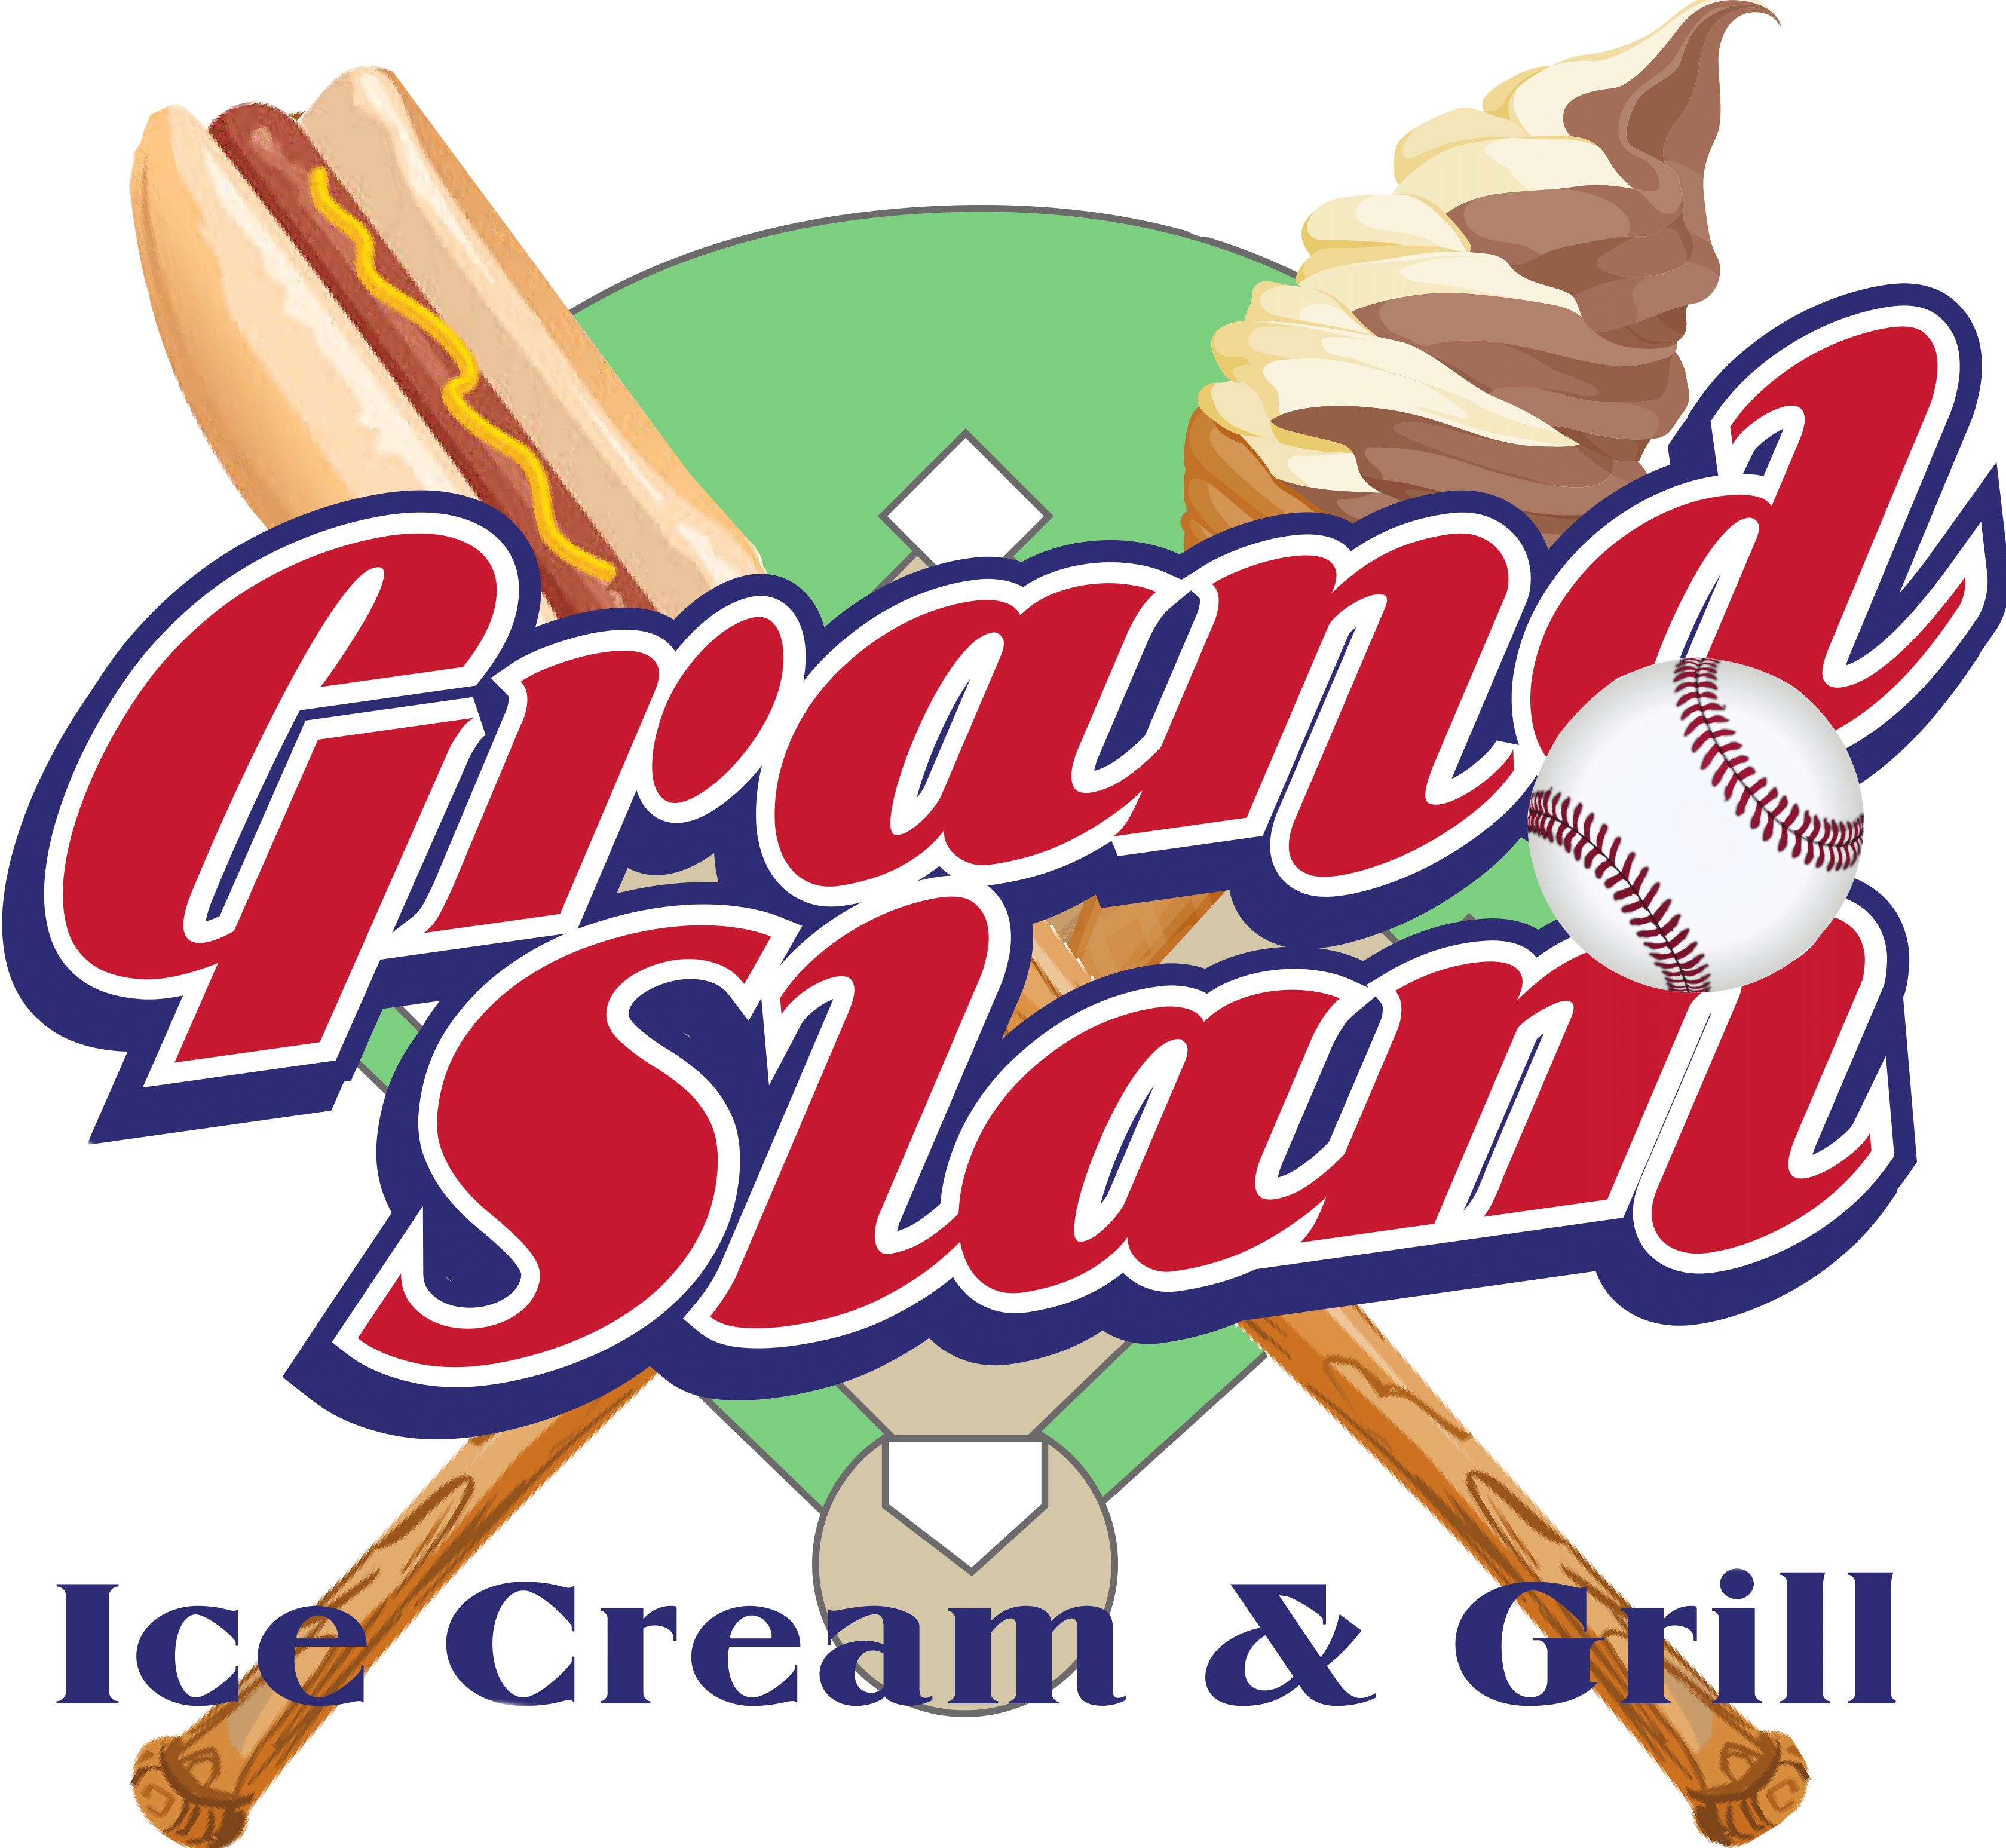 Grand slam baseball wording clipart picture freeuse stock 28+ Collection of Grand Slam Clipart   High quality, free cliparts ... picture freeuse stock